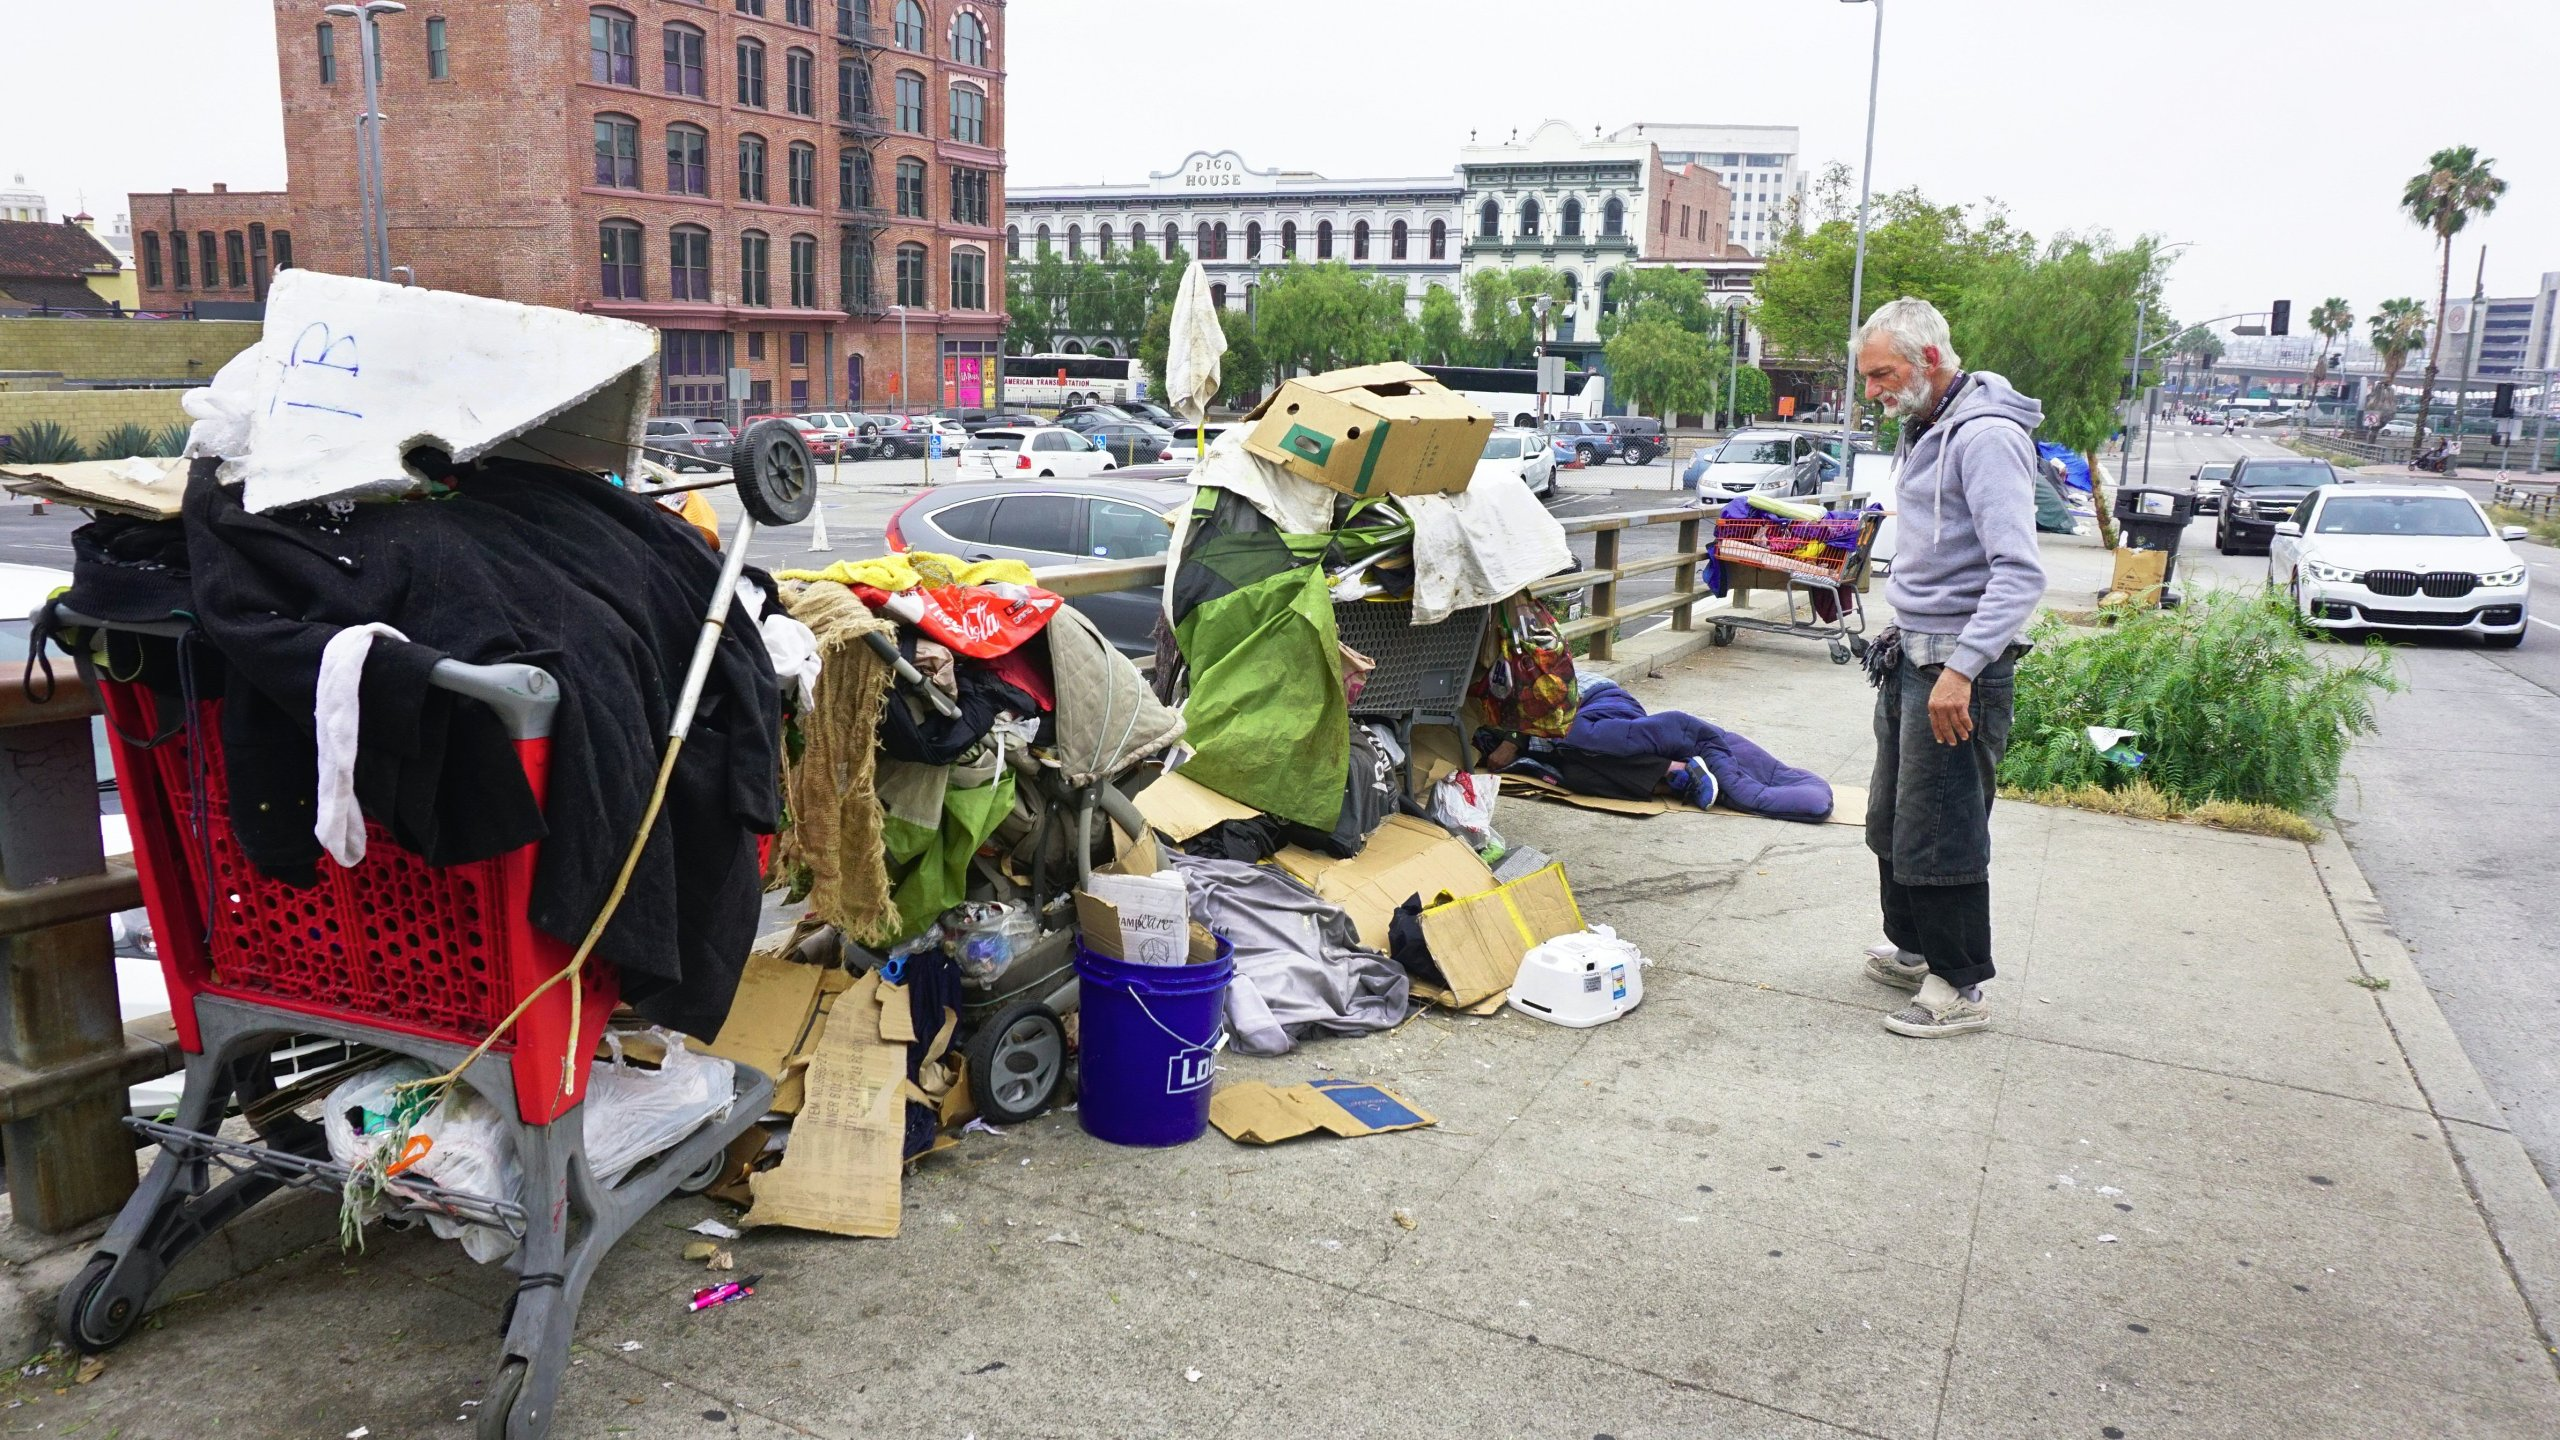 A homeless man stands before his belongings at his encampment on a downtown Los Angeles sidewalk as vehicles pass by on June 7, 2017. (Credit: Frederic J. Brown / AFP / Getty Images)